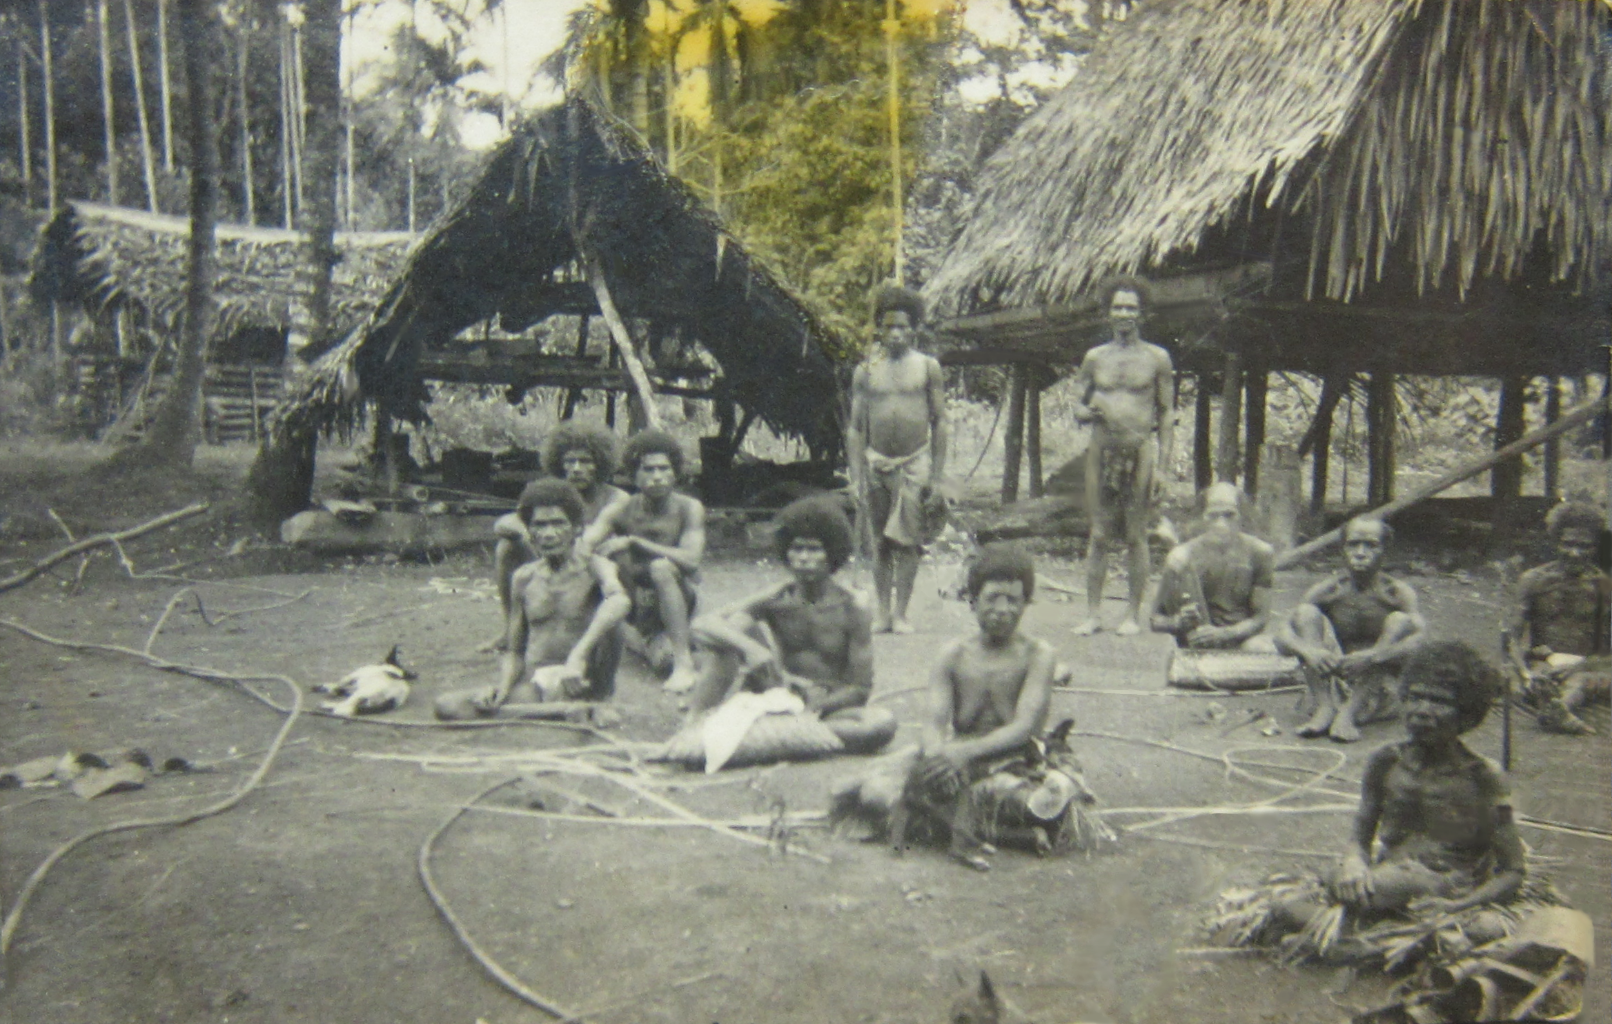 """""""In contrast with Goodenough Island, which was mountainous, Kiriwina was flat, with coral cliffs reaching nowhere higher than 100 feet. There were about 8,000 natives who lived on taro, bananas, paw paws, pineapples and other crops grown on the rich soil of the island, in addition to rations brought from the south.""""  (AWM Official History, July-Sept '43 'At Kiriwina', p69)"""